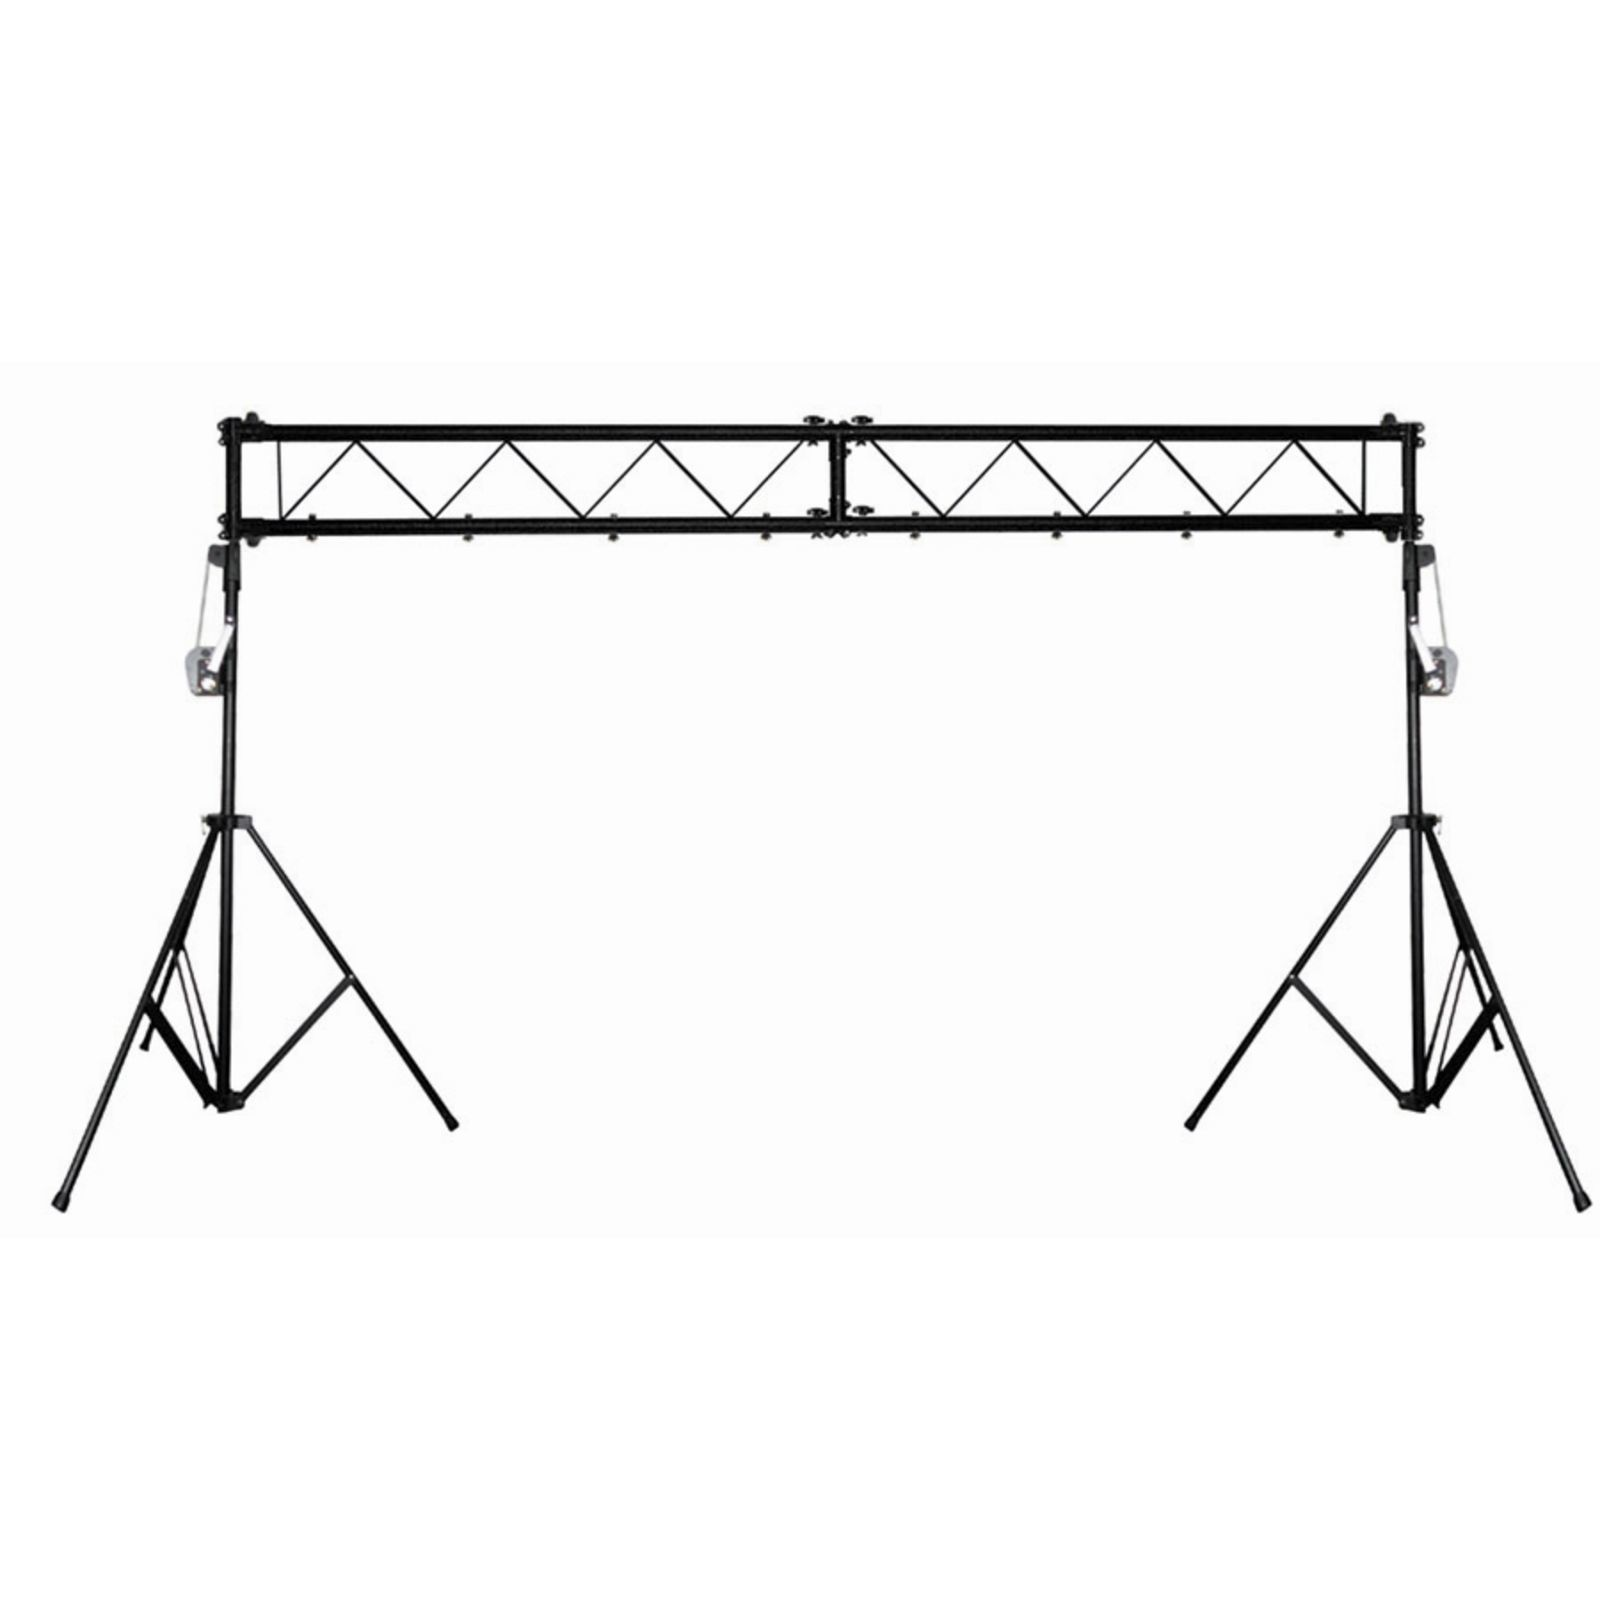 Varytec Double Stand System with Truss Cross Bar and Crank Produktbillede